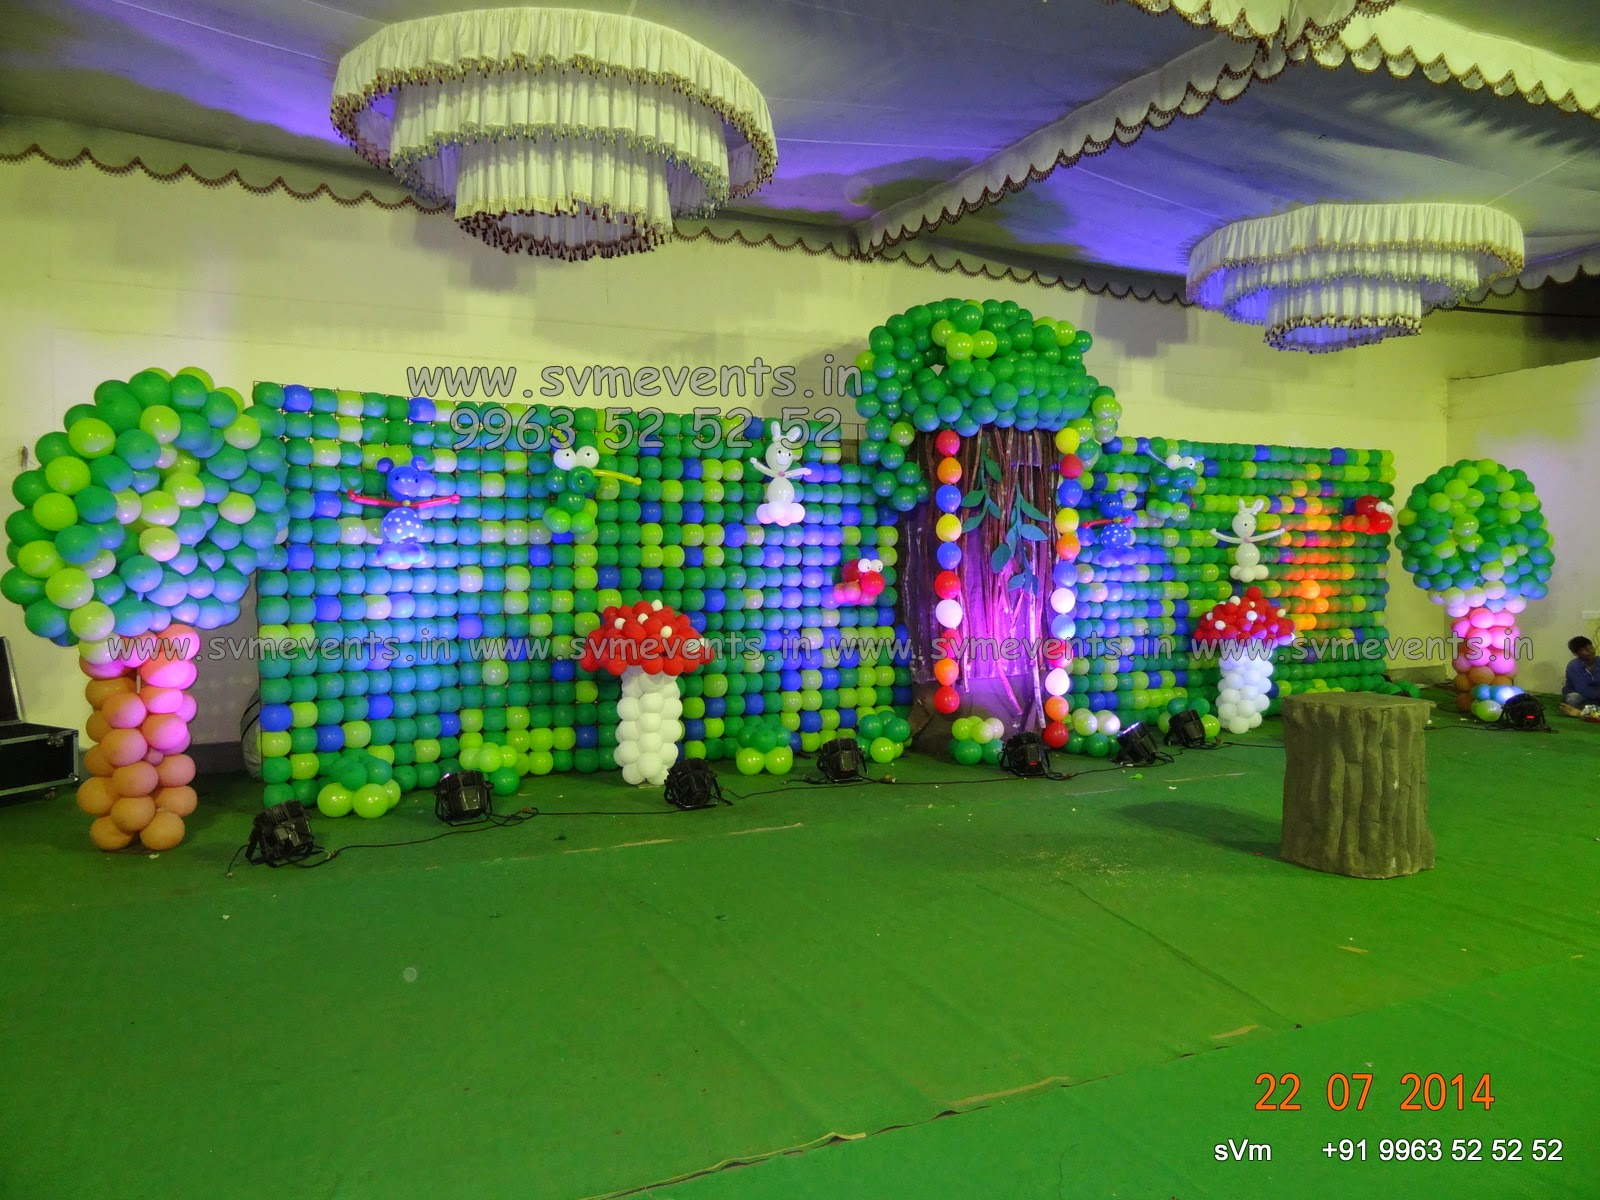 Jungle Theme Decorations Svm Events Jungle Theme Balloon Wall And Balloon Decorations